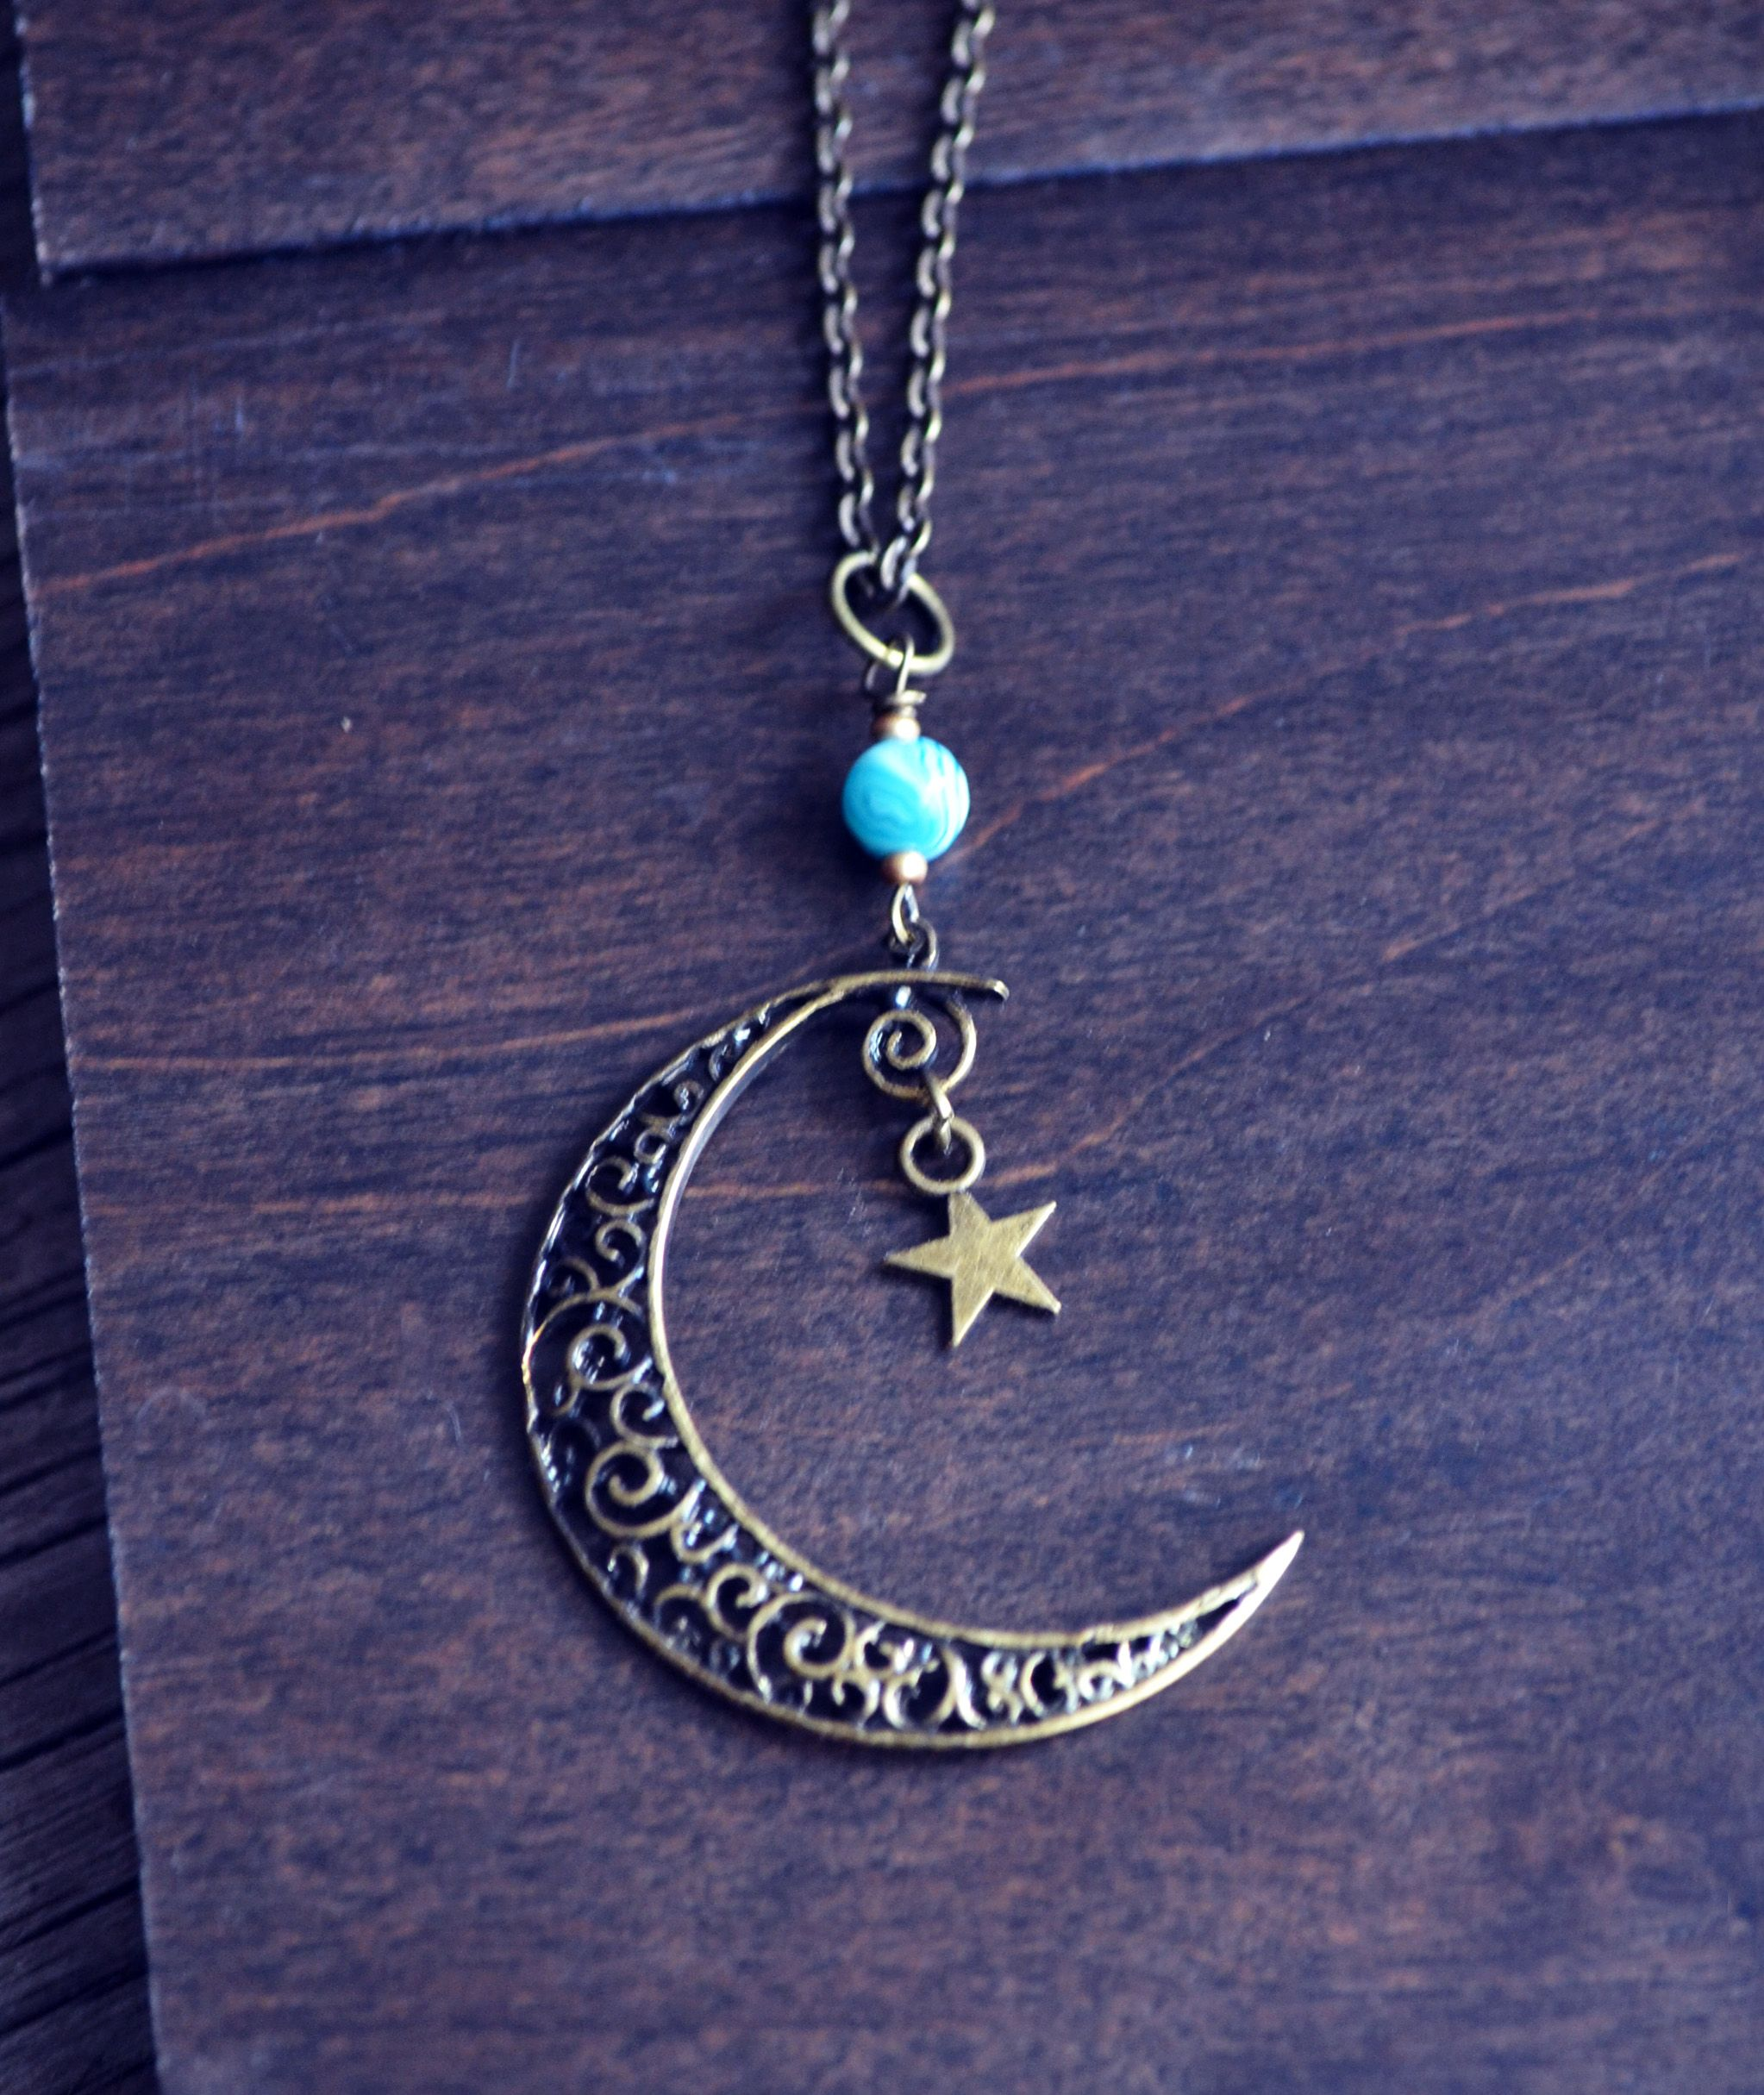 claire necklace half pendant moon us silver s